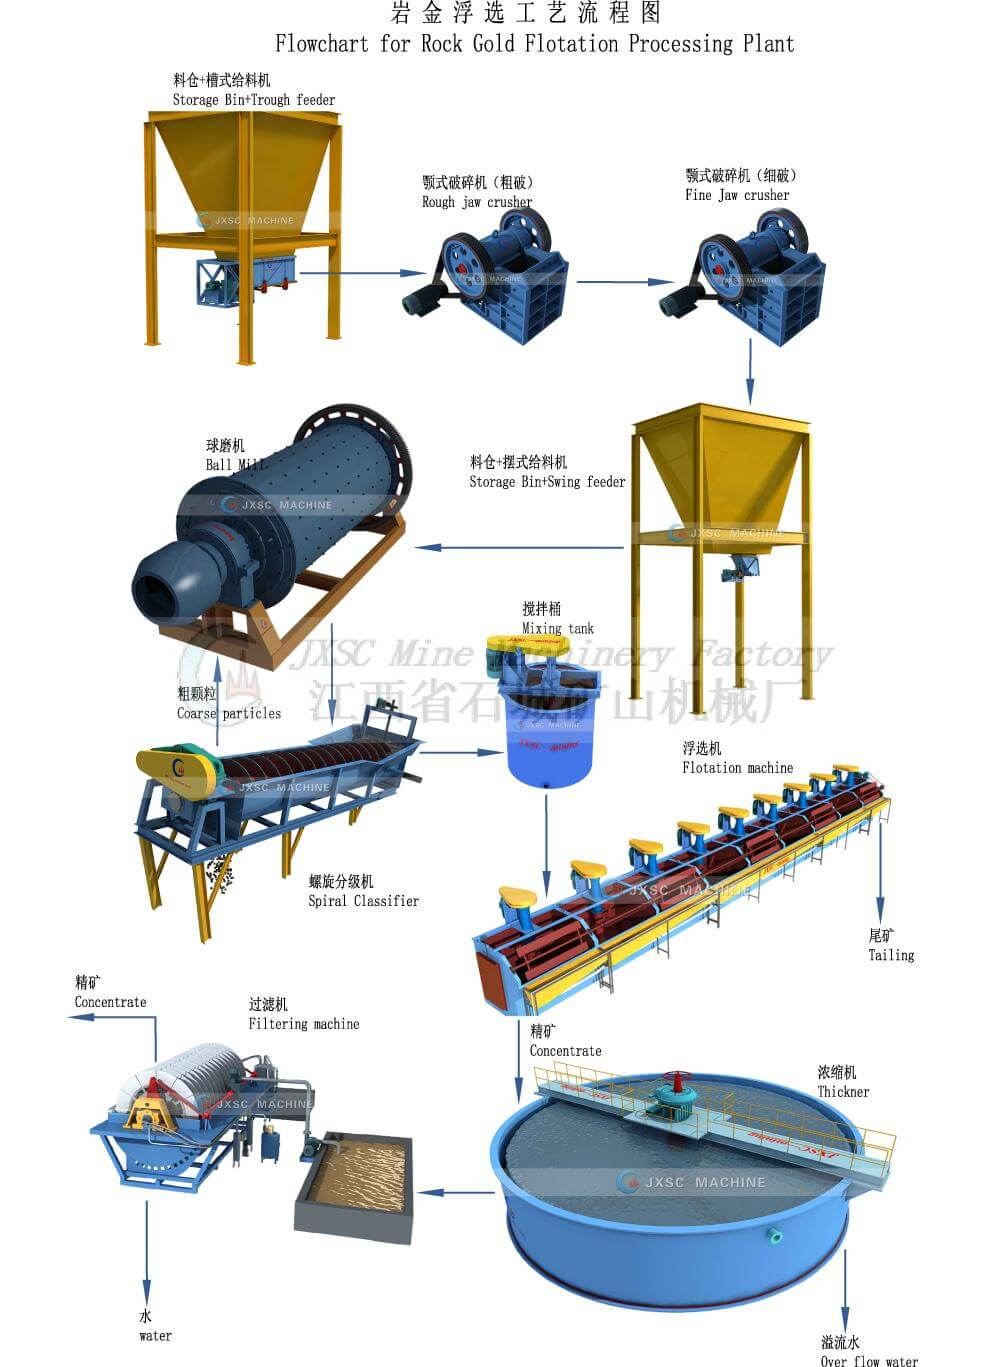 The specific process of flotation